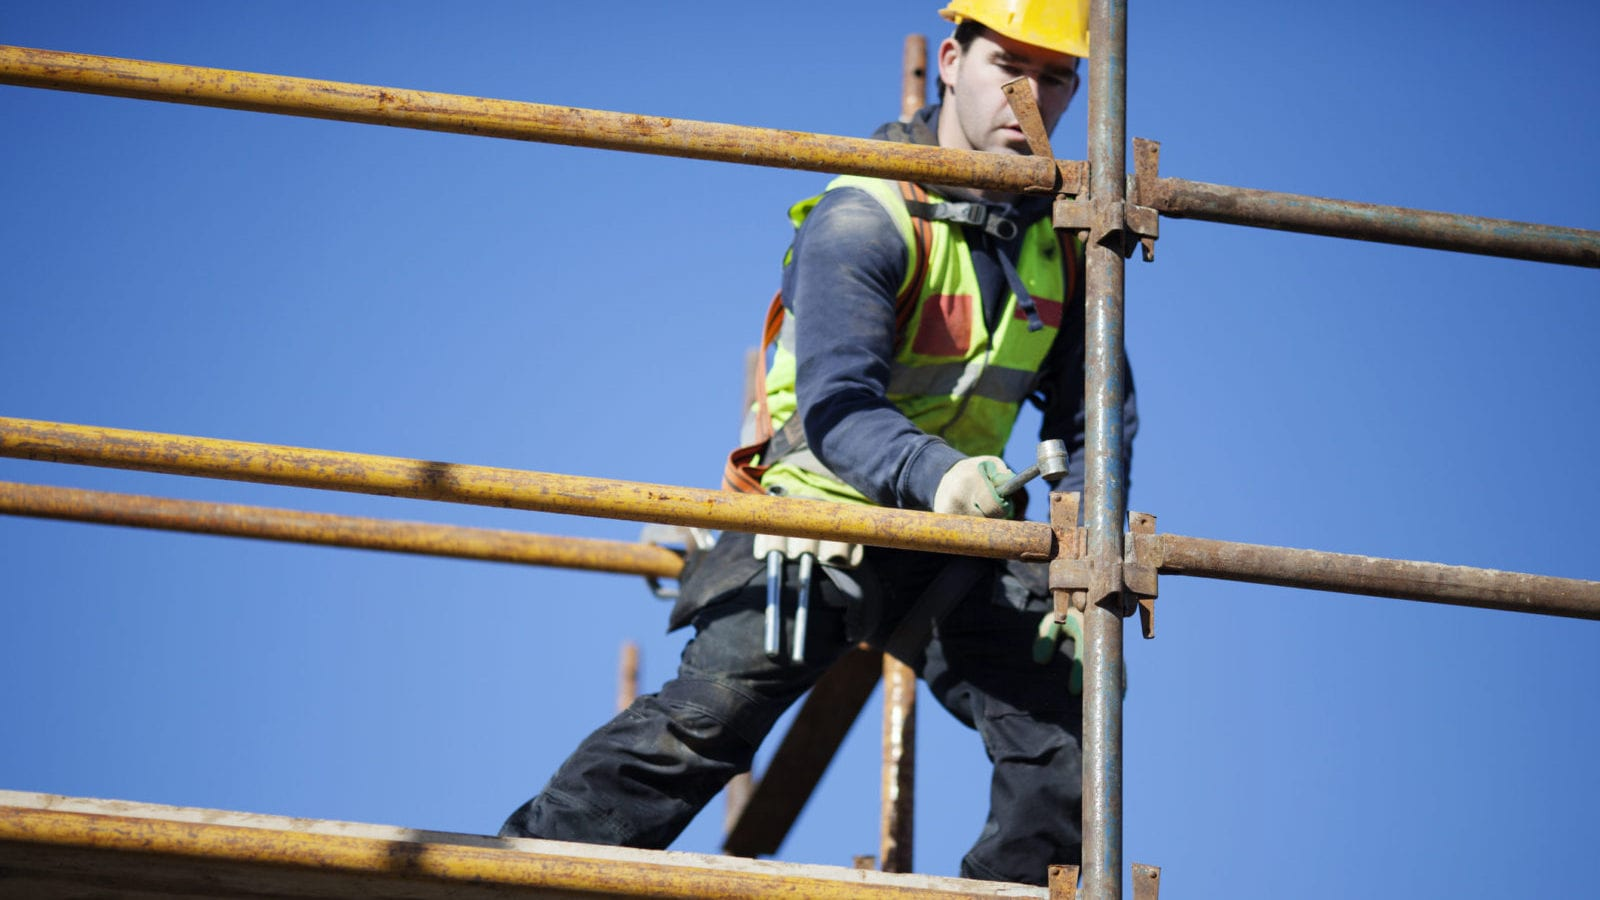 Construction Worker - Scaffolding Accident Stock Photo